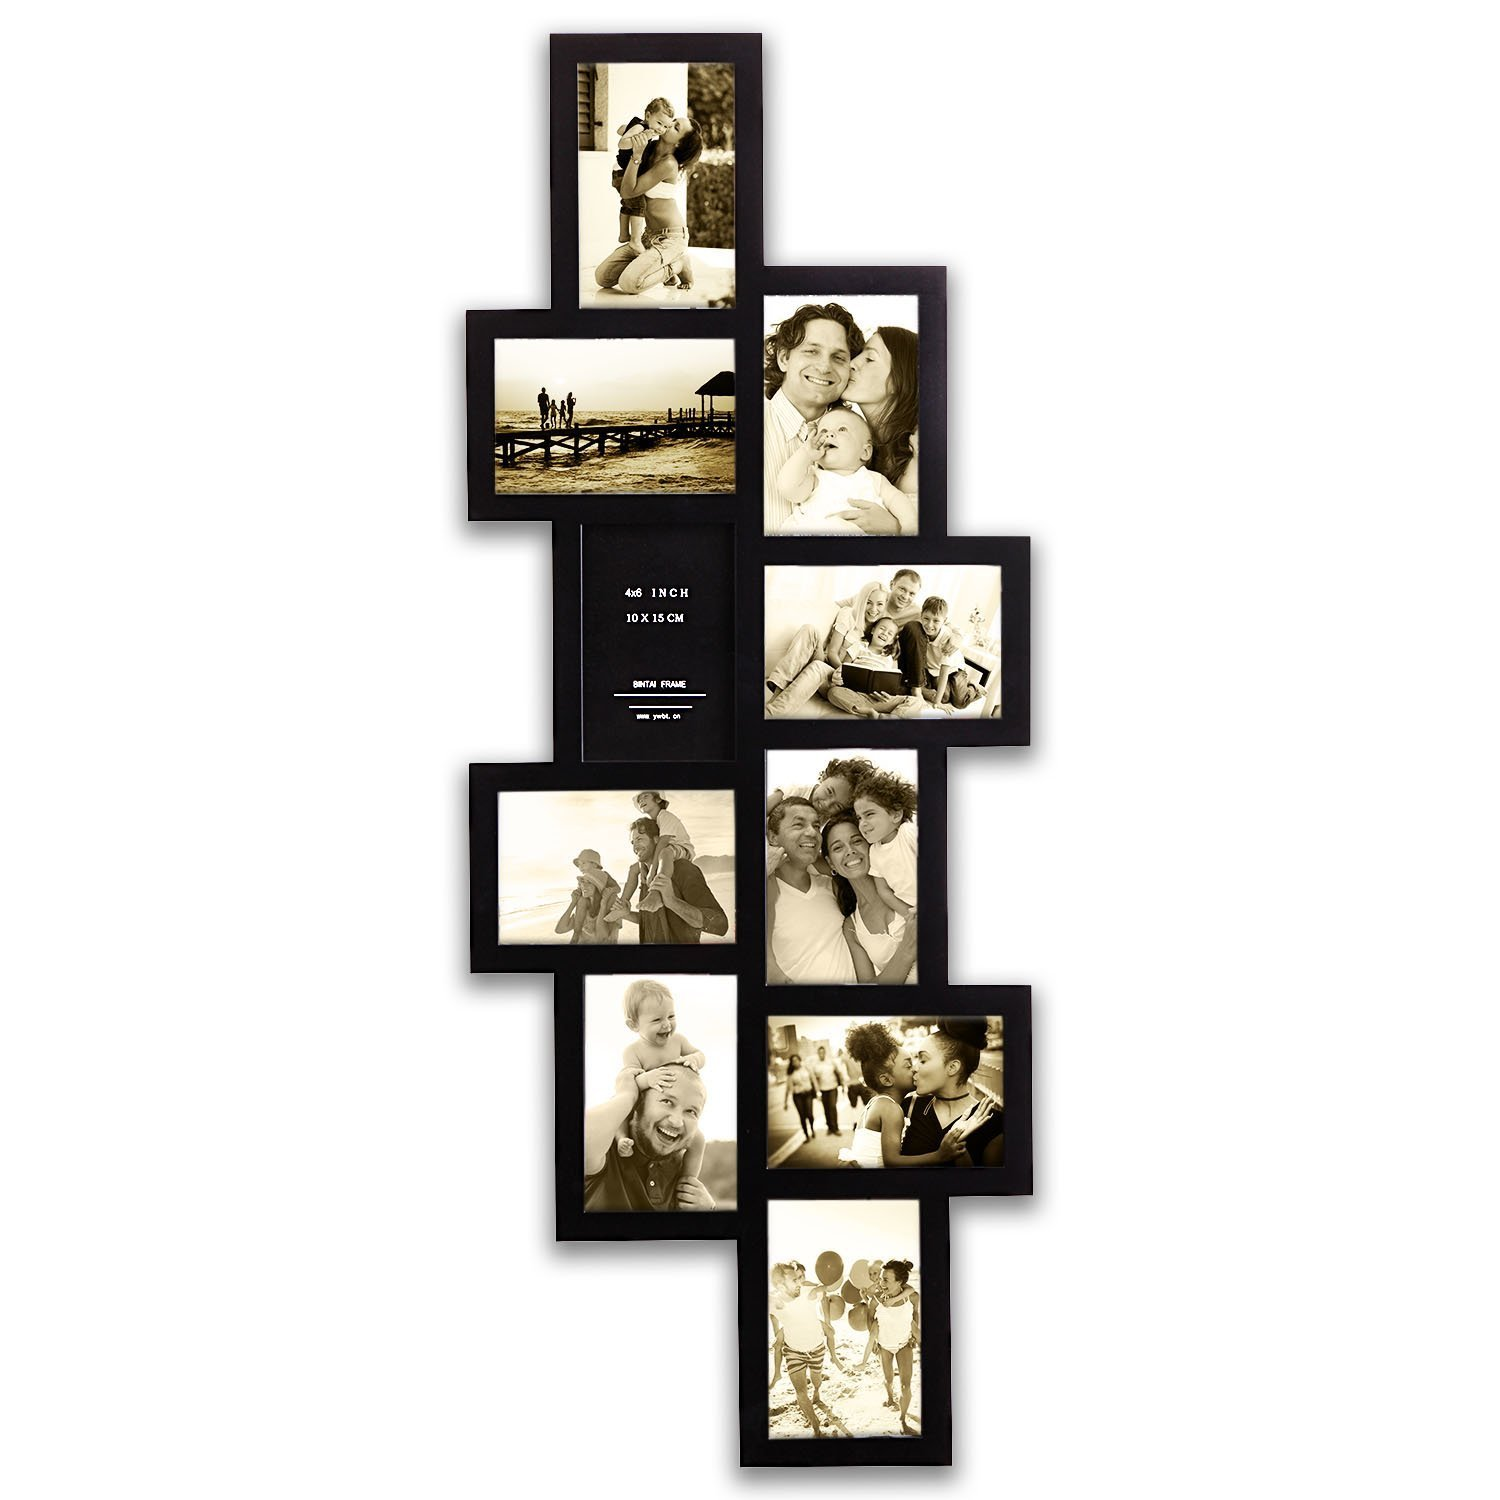 Hello Laura - 33 by 13.5'' inch Wall Hanging Photo Frame, 4 x 6'' inch Photo Sockets x 10, 10 opening Black Frame Edge | Gallery Style by Hello Laura (Image #2)